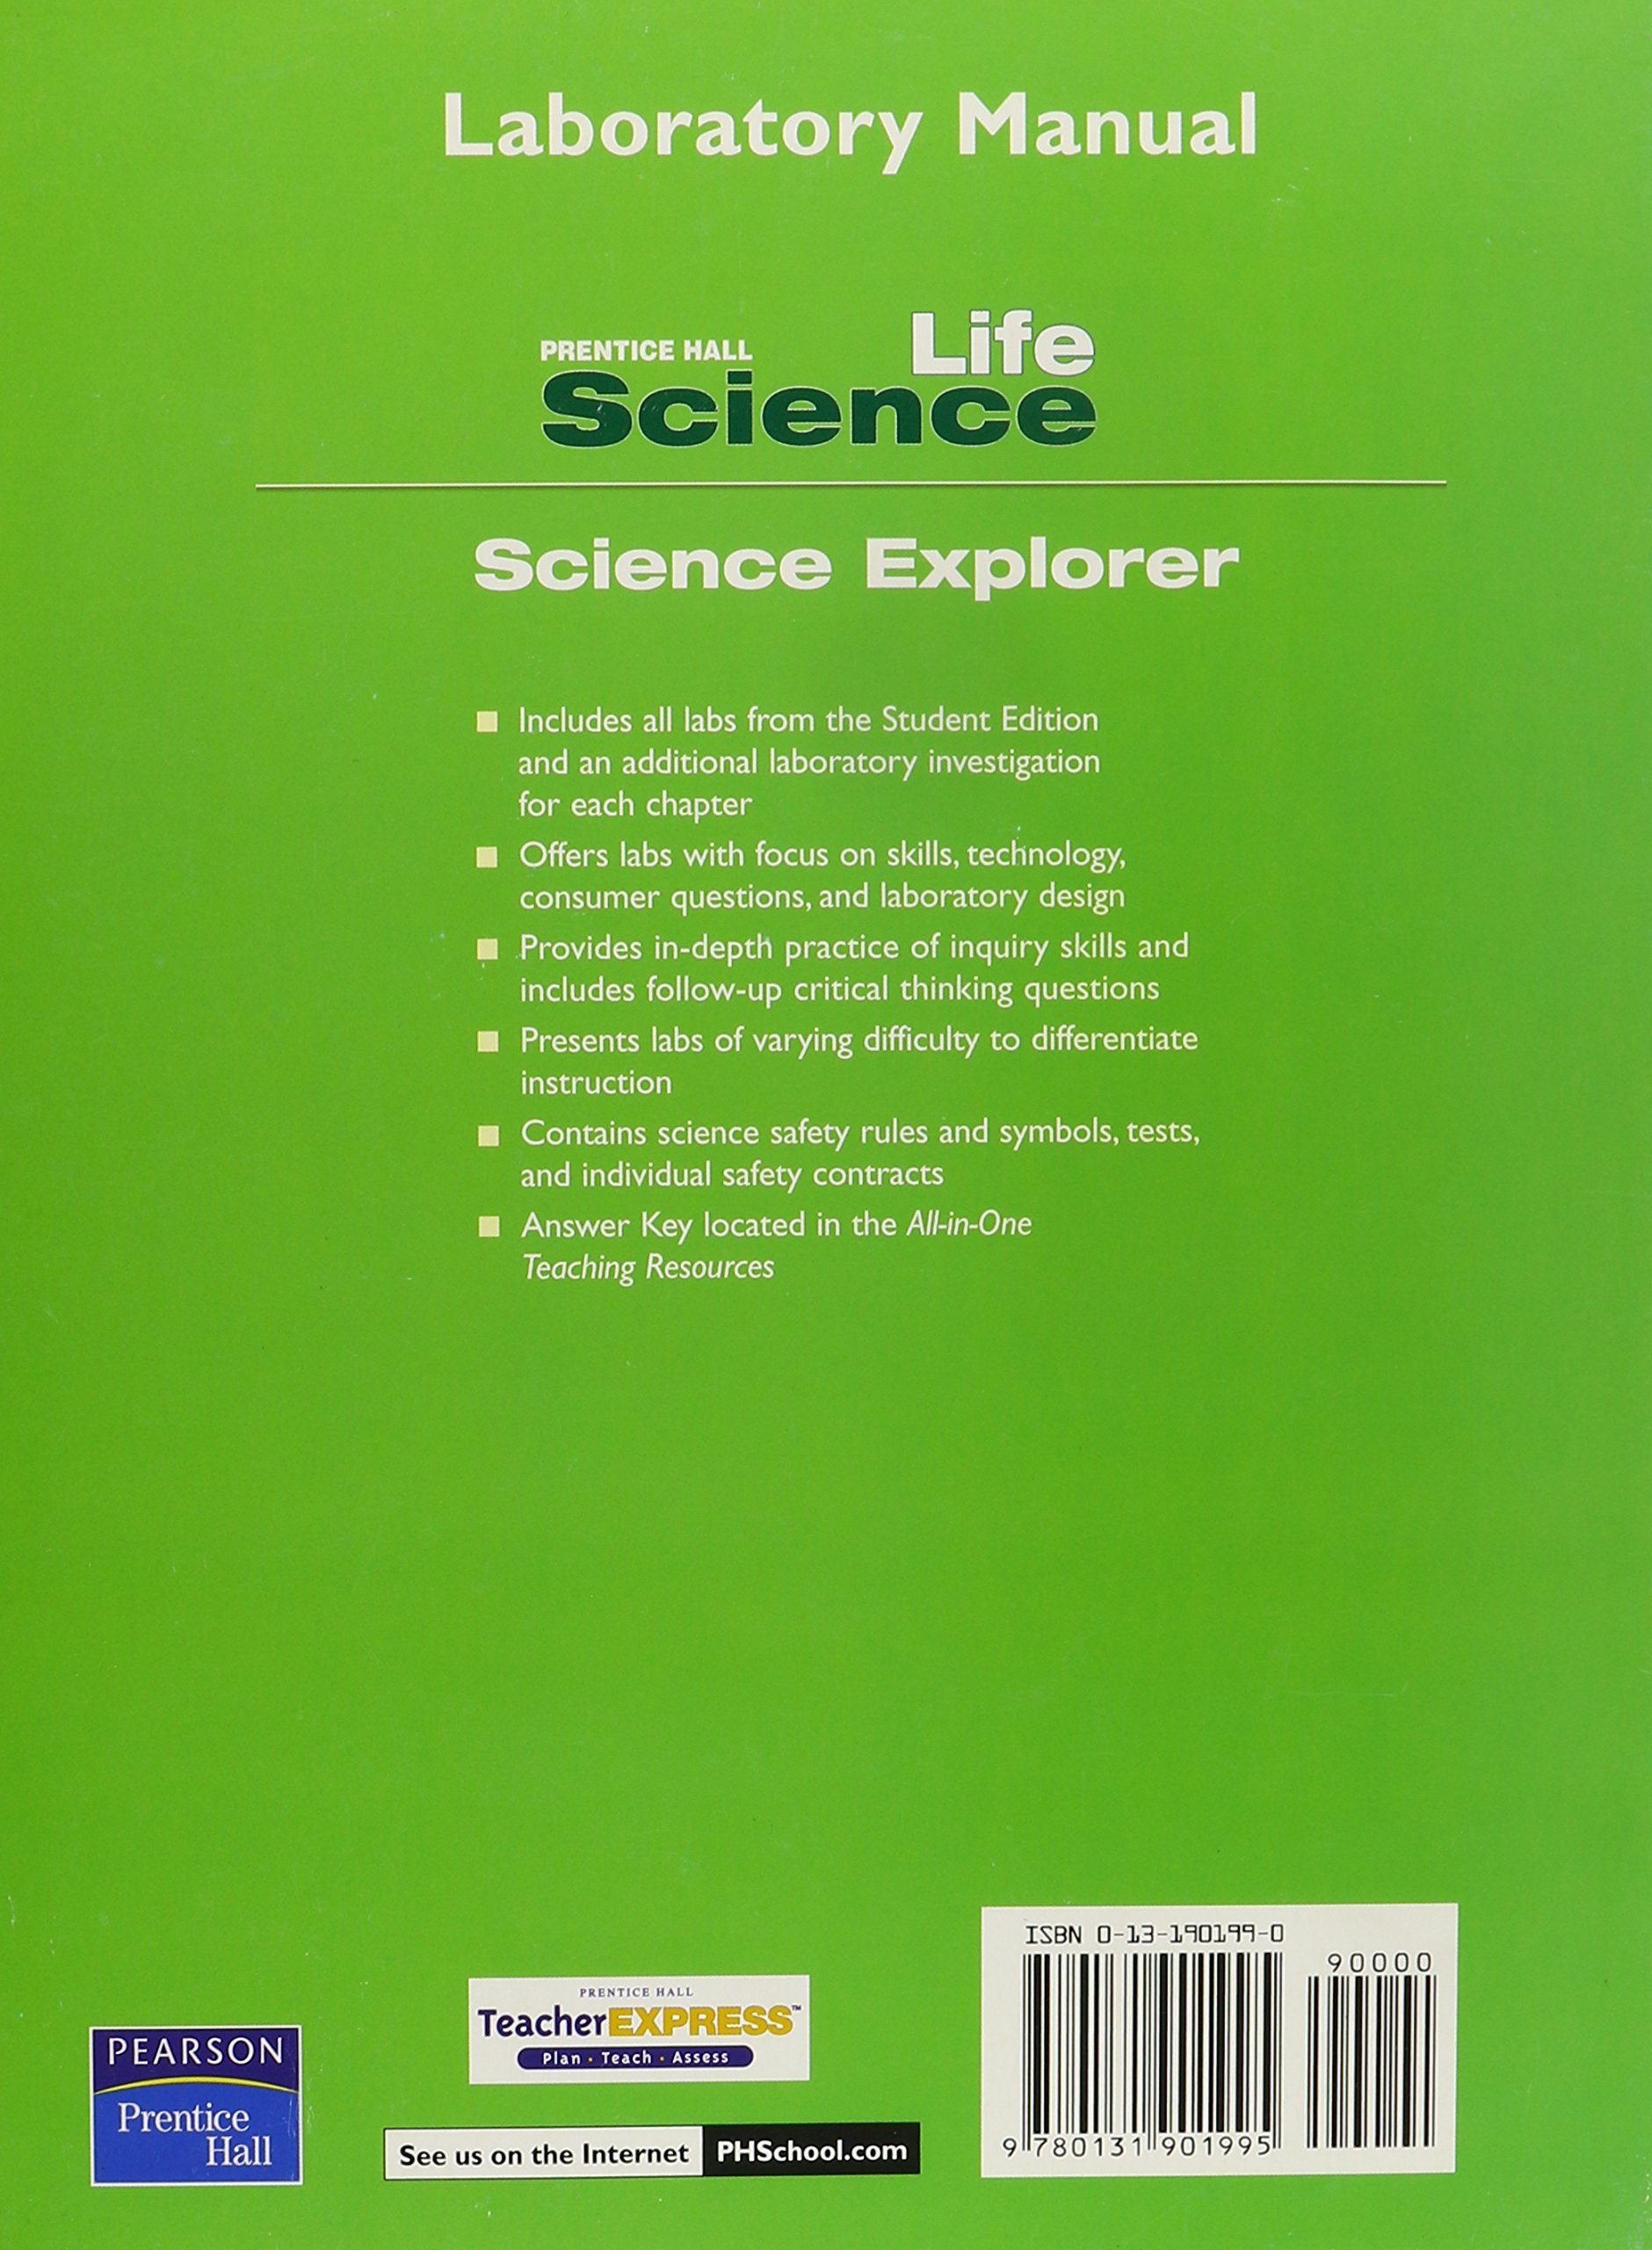 Prentice Hall Science Explorer: Life Science, Laboratory Manual: PRENTICE  HALL: 9780131901995: Amazon.com: Books